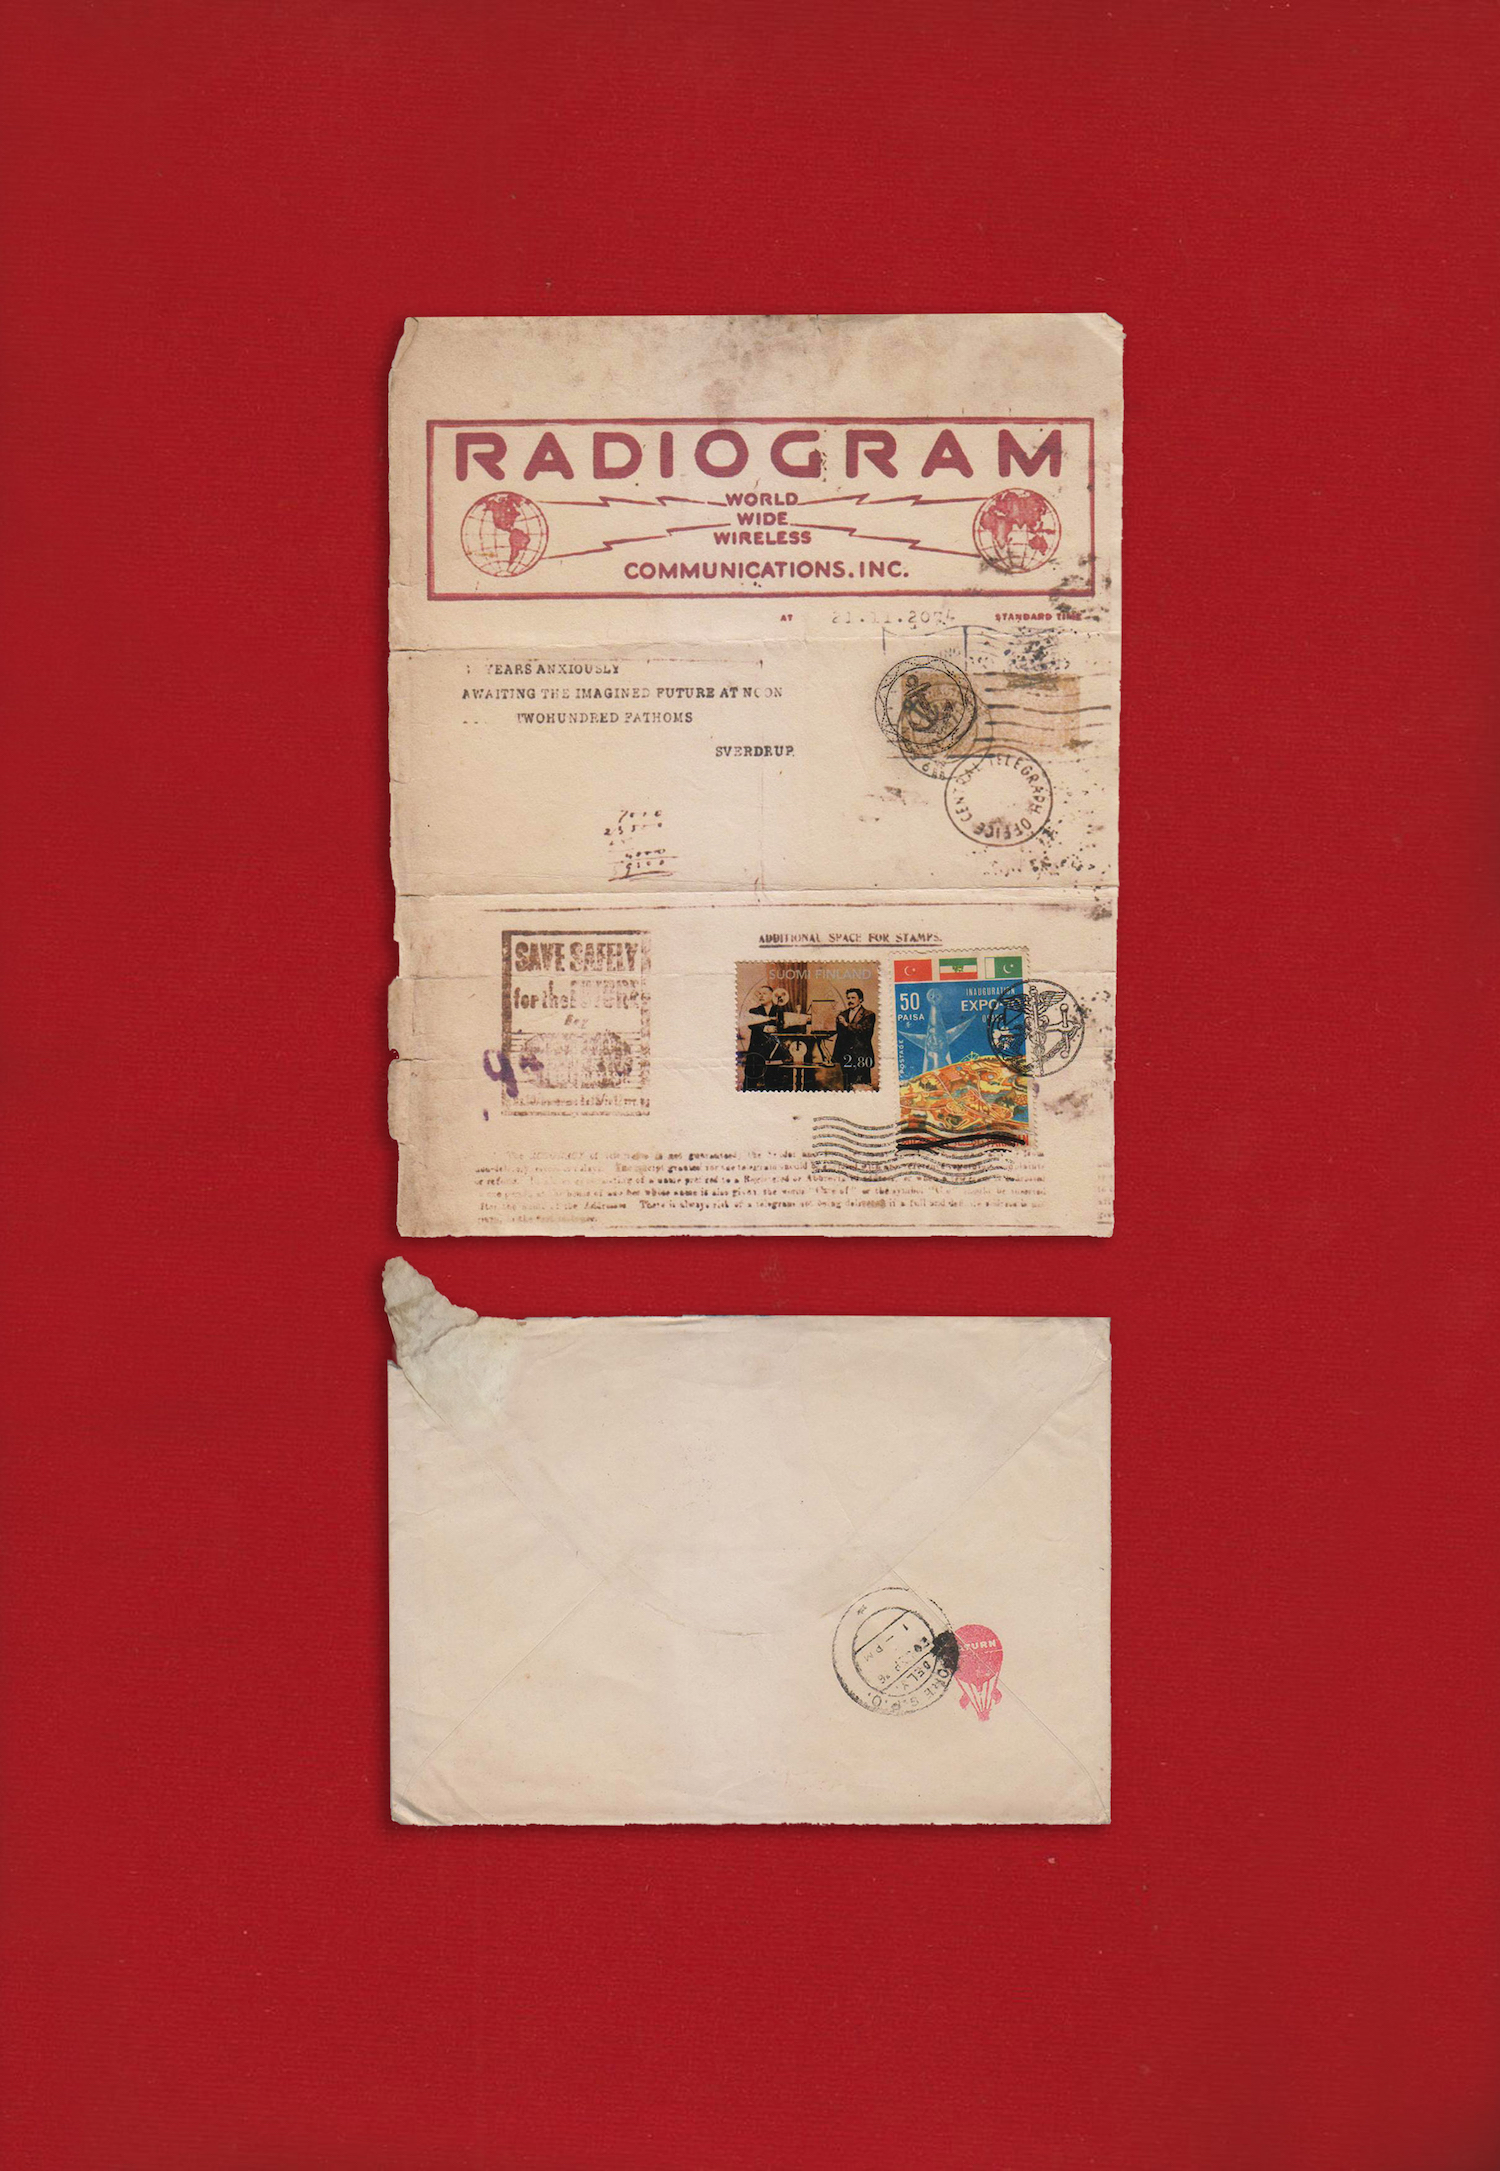 Telegram from the Future, Radiogram 2013 Molded paper, rubber stamps, postage stamp, ink, accompanying envelope, red velvet 36.83 x 55.25 x 3.91 cm (framed) 17.78 x 22.86 cm (molded paper) 12.95 x 18.28 cm (envelope)